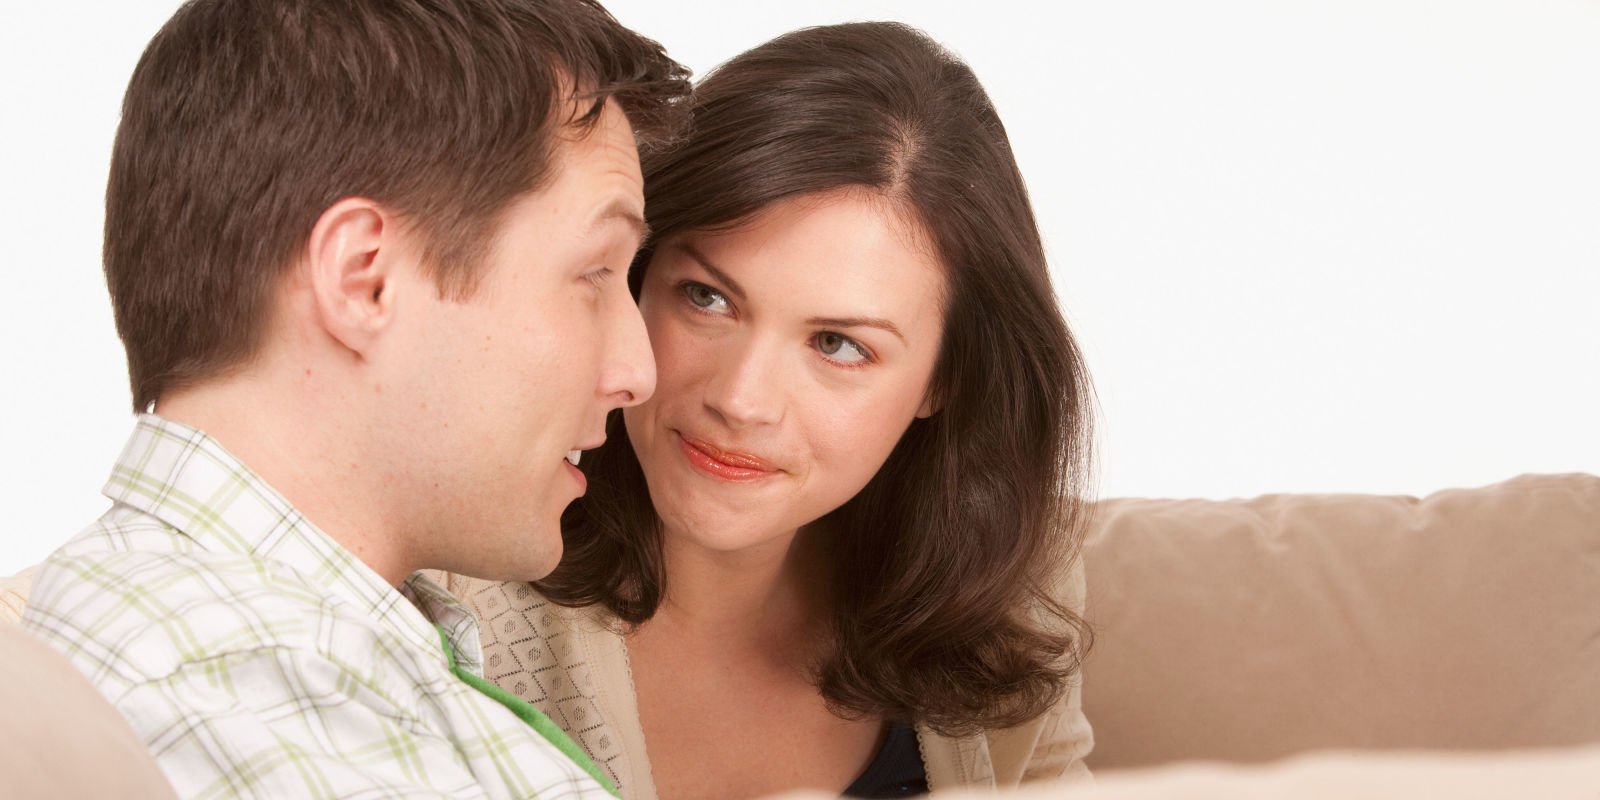 improving relationships Conflict in a relationship is virtually inevitable in itself, conflict isn't a problem how it's handled, however, can bring people together or tear them apart poor communication skills, disagreements, and misunderstandings can be a source of anger and distance or a springboard to a stronger relationship and happier future.